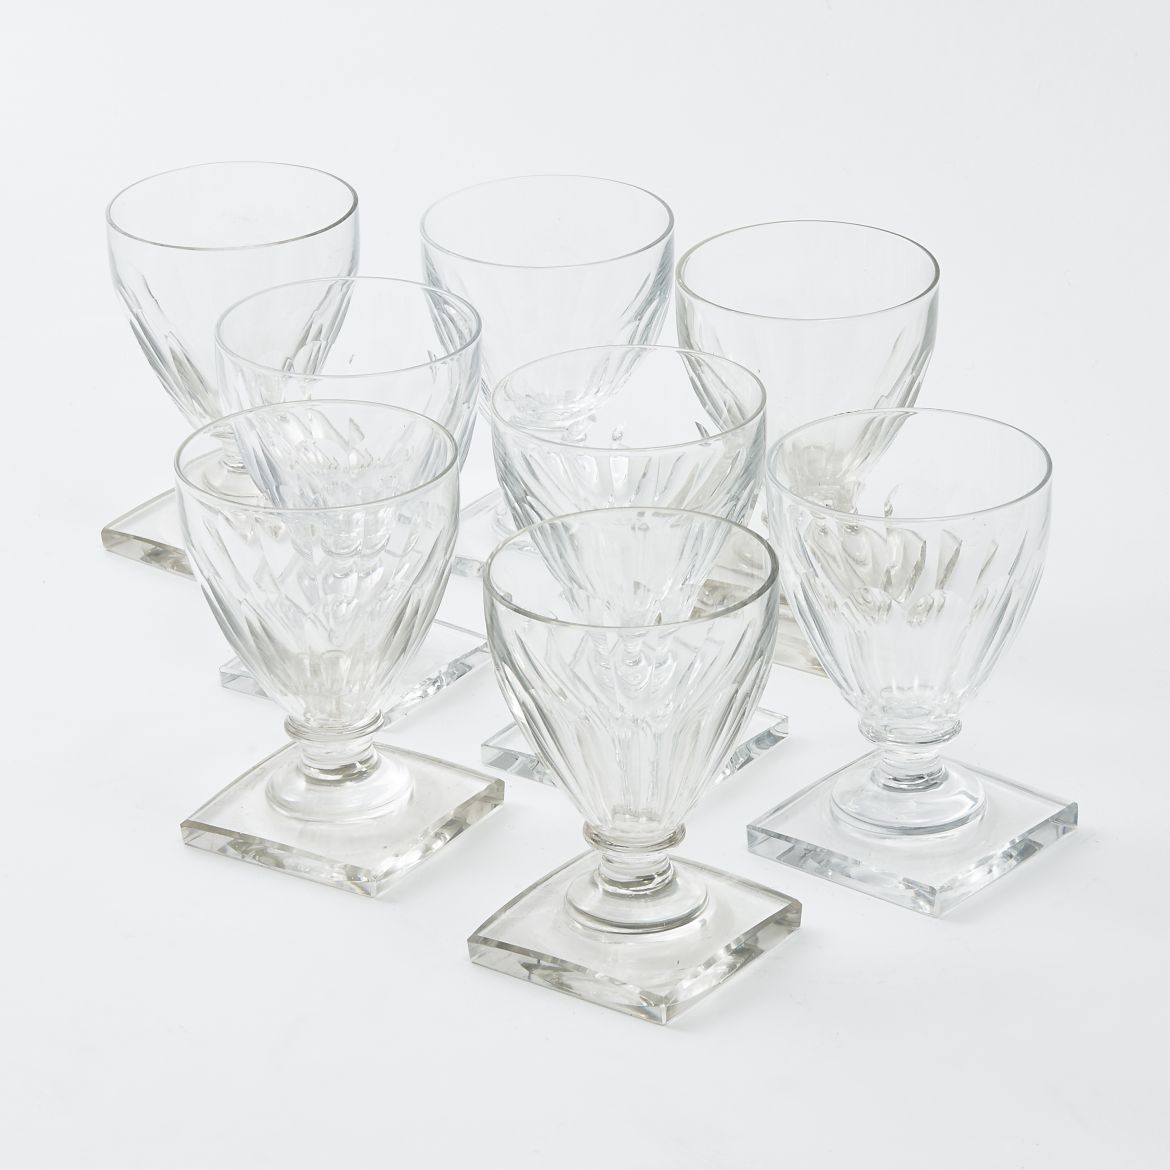 Set 8 Val St Lambert Glasses